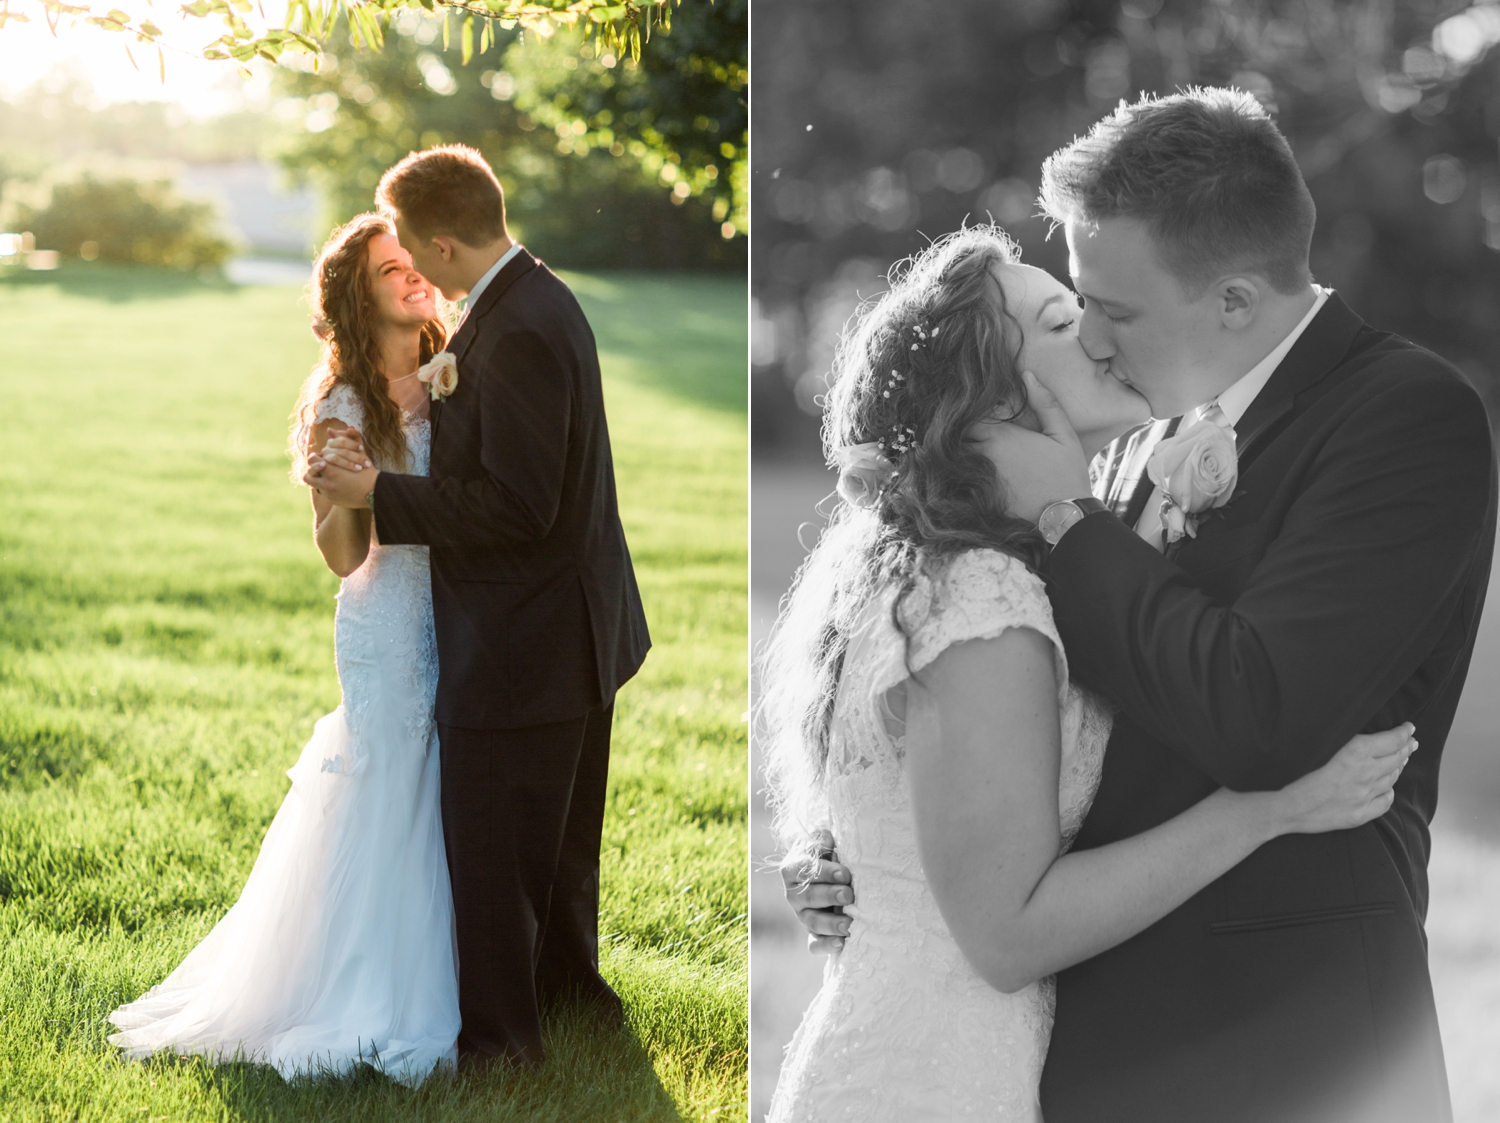 Community_Life_Center_Indianapolis_Indiana_Wedding_Photographer_Chloe_Luka_Photography_6987.jpg